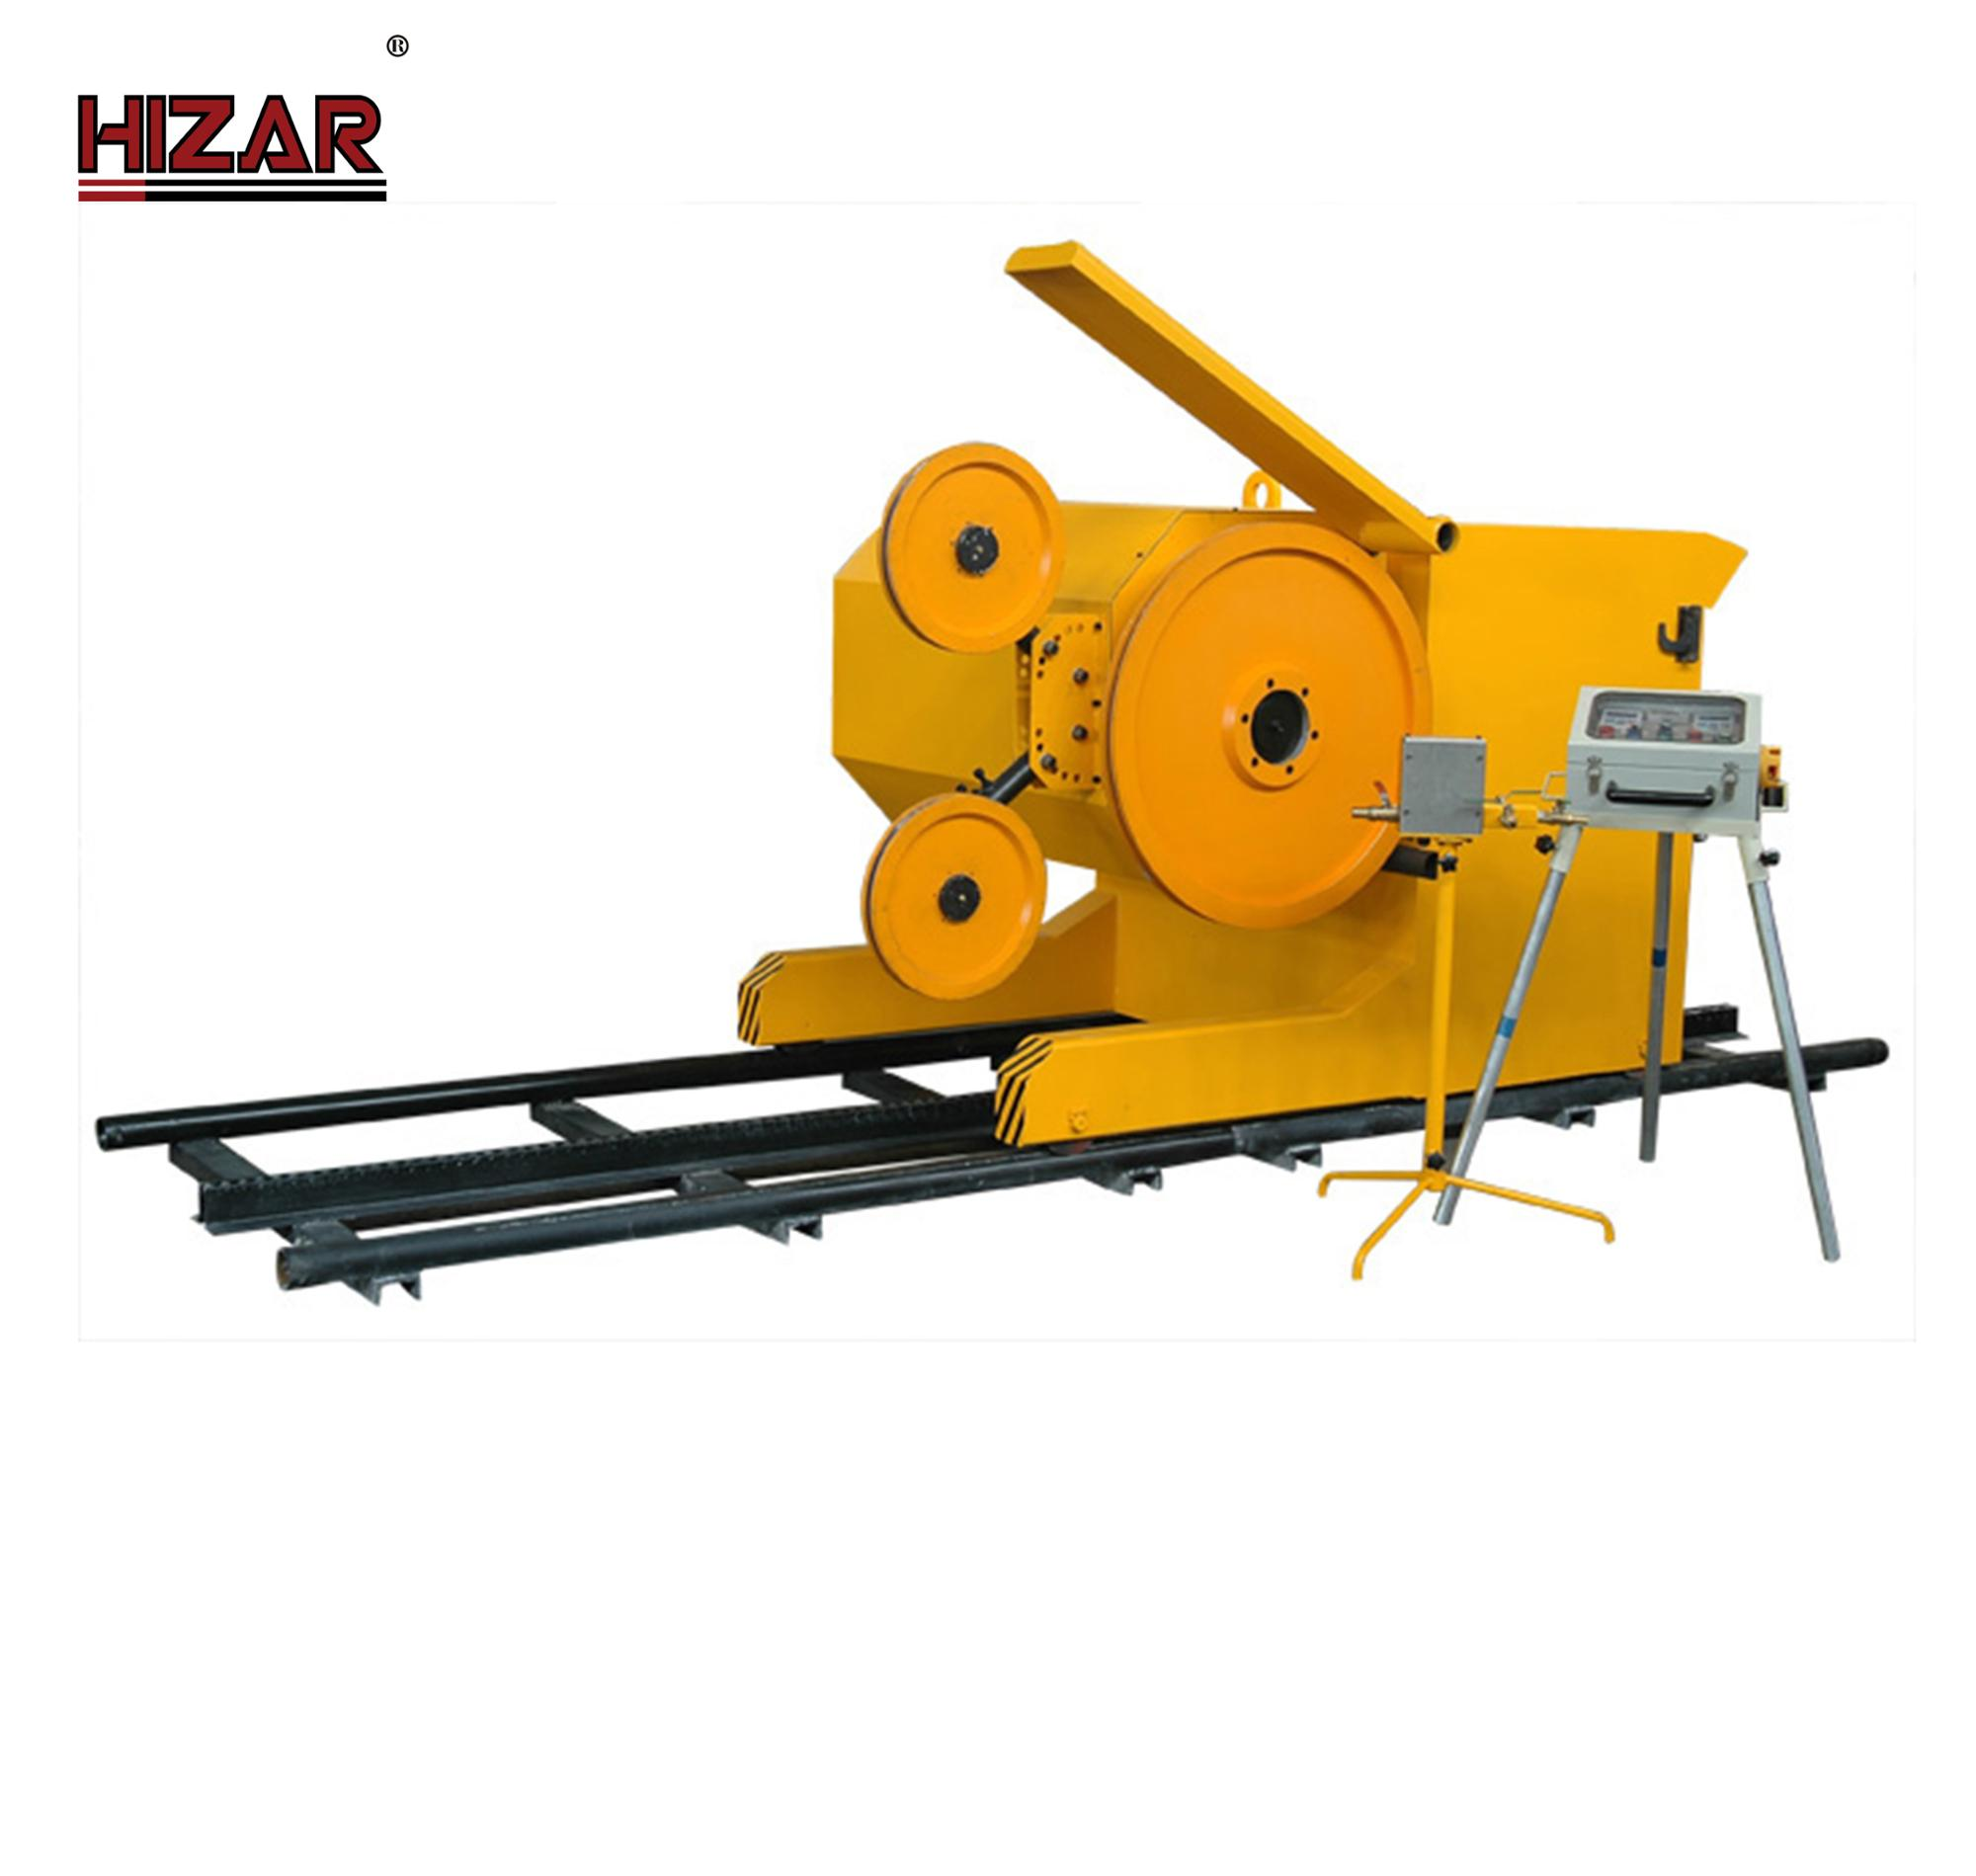 Hizar Hws75 High Quality Rope Cutting Stone Machine Concrete Wire ...